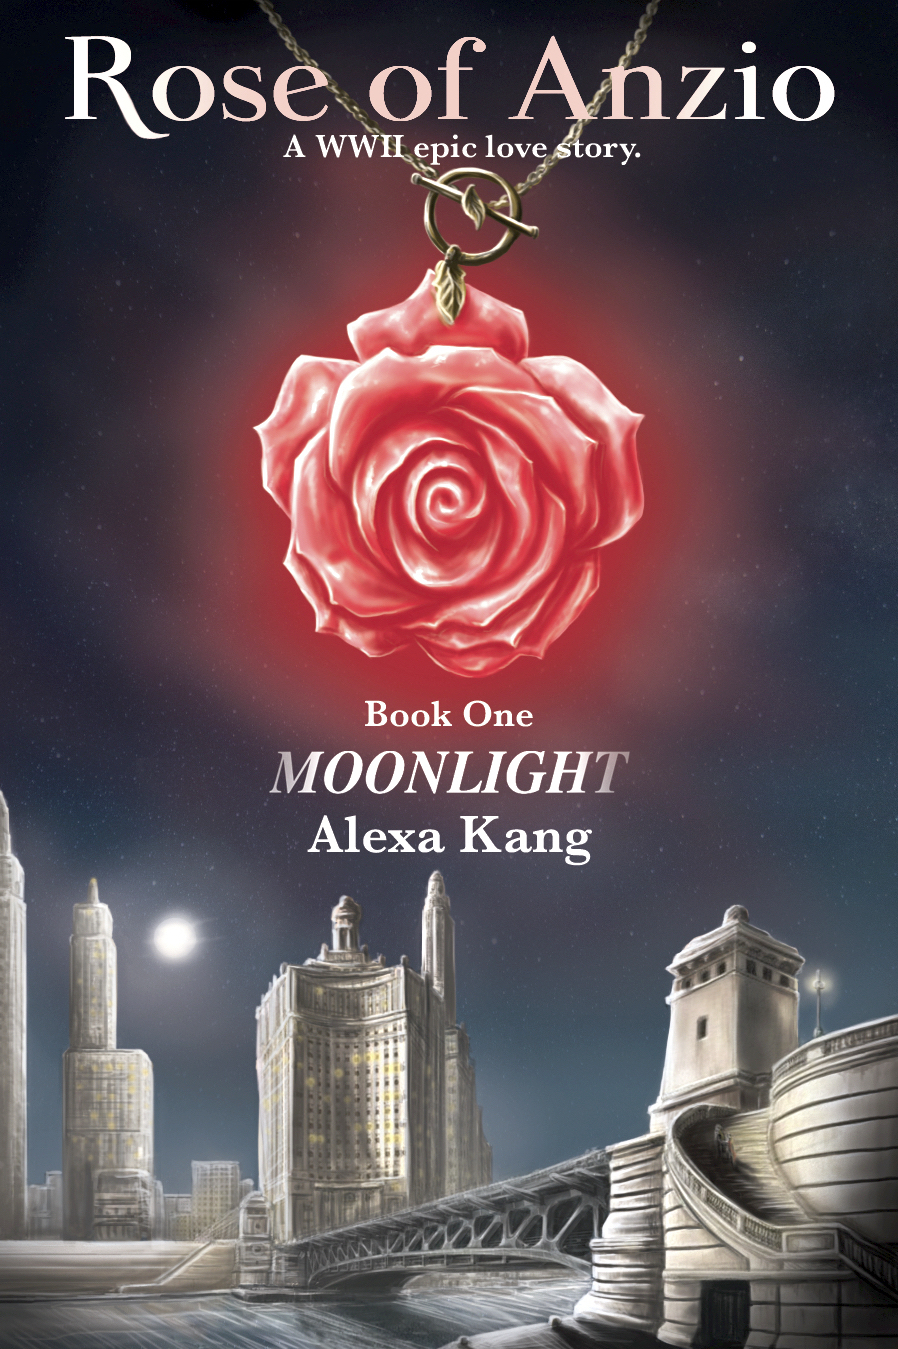 epic love story book cover Rose of Anzio Book One Moonlight